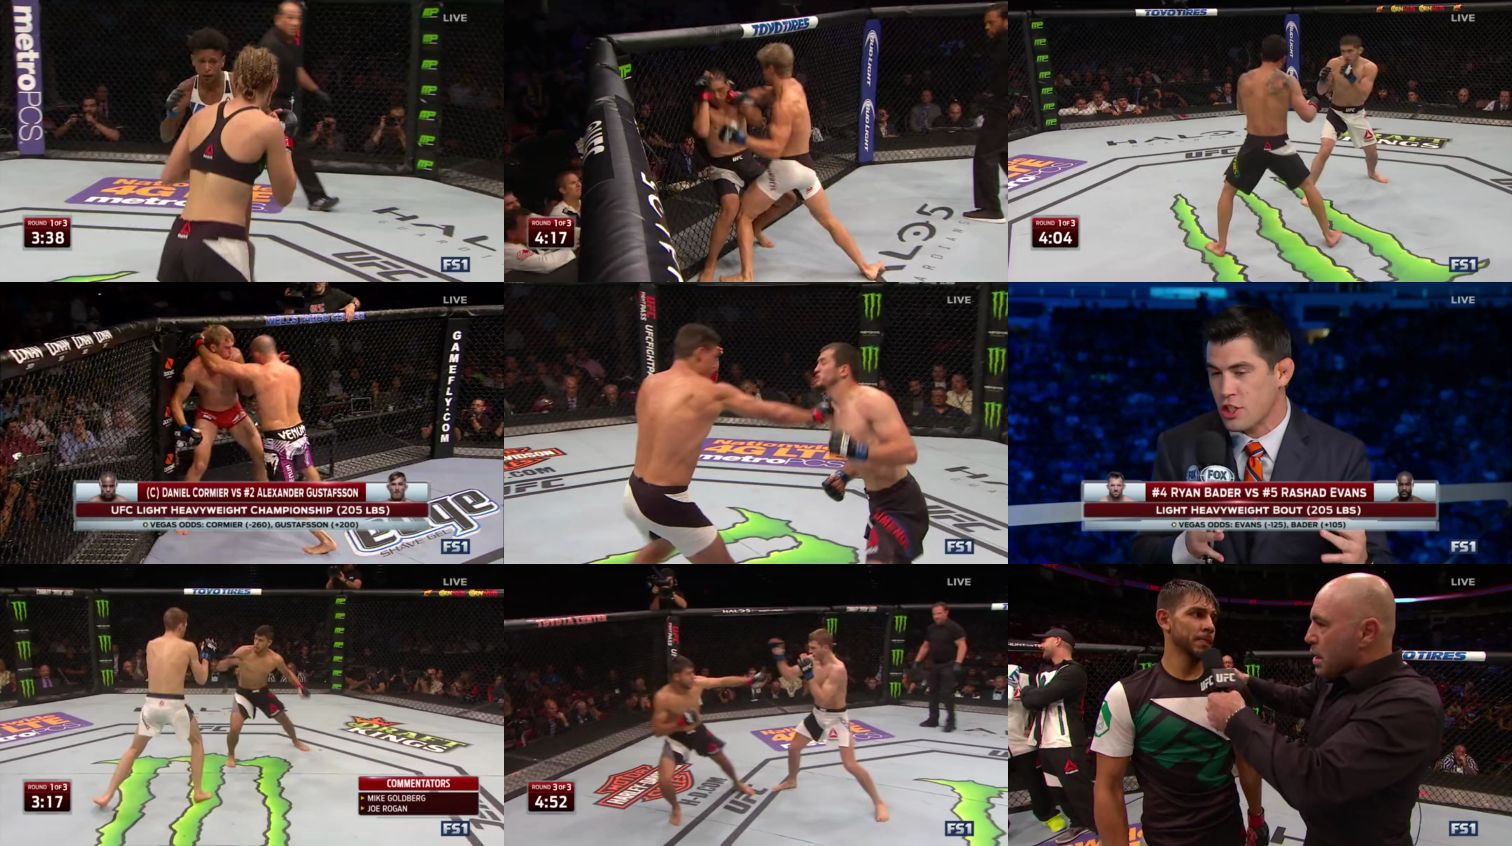 UFC 192 Preliminary Fights 720p HDTV x264-KILLERS